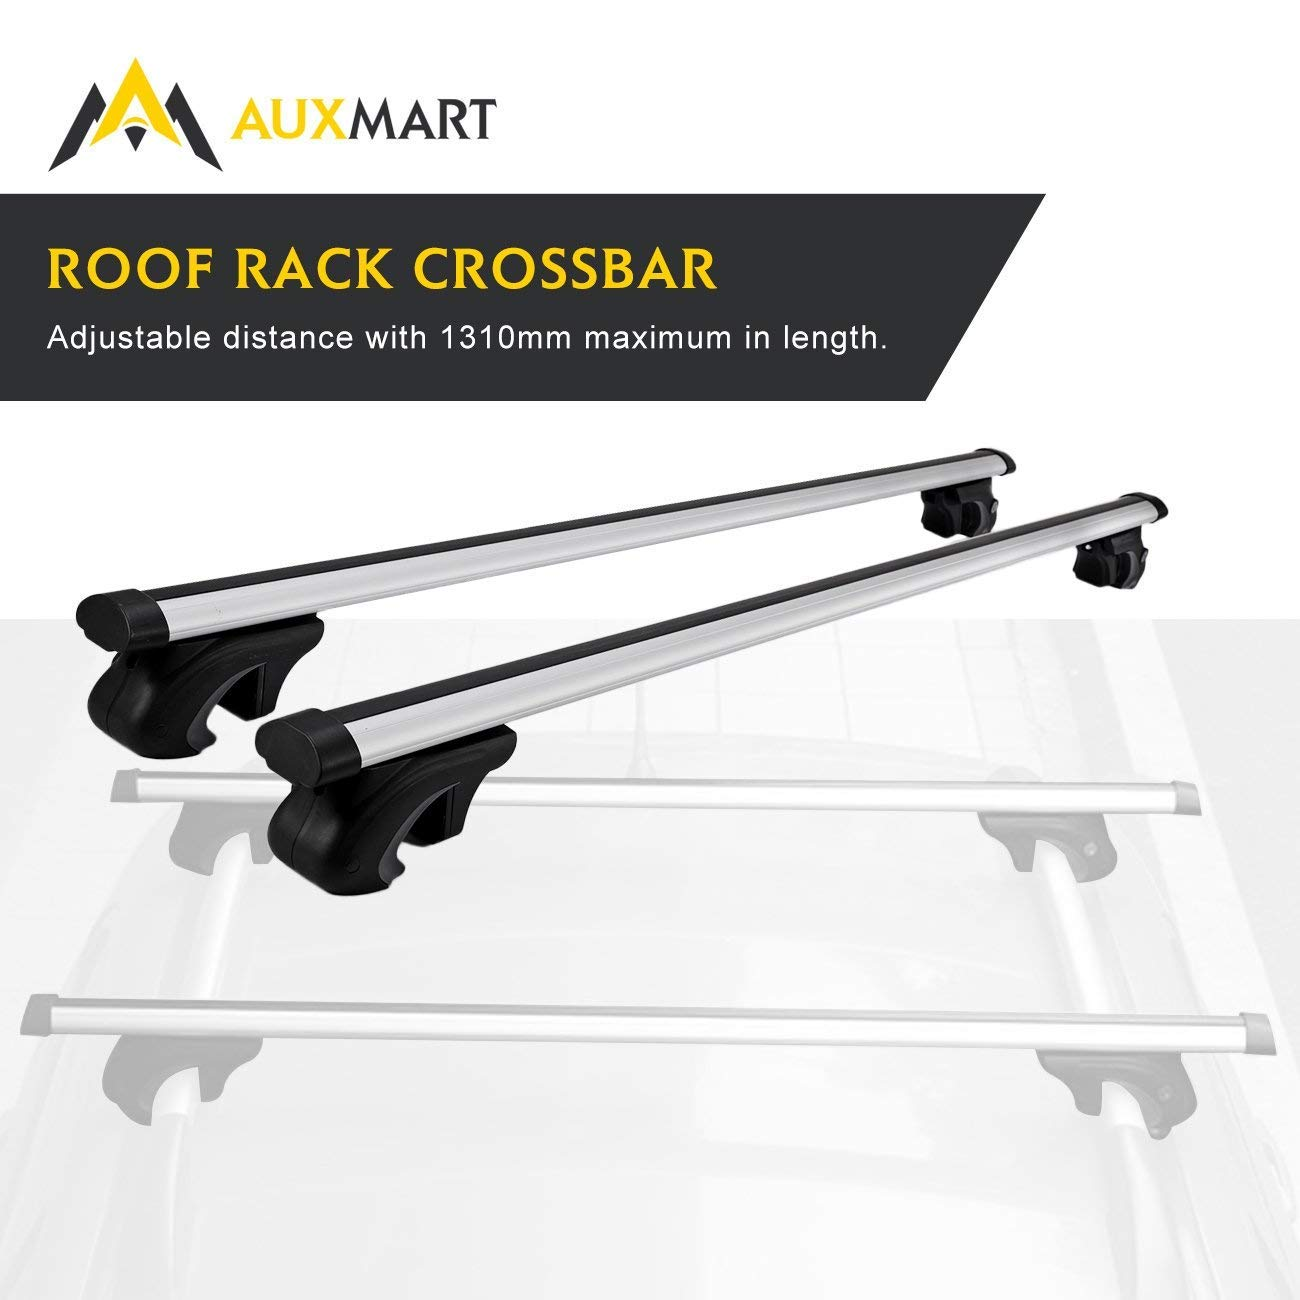 AUXMART 54' Universal Roof Rack Cross Bars - Fit Your Car or SUV with Raised Side Rails (Aluminum)